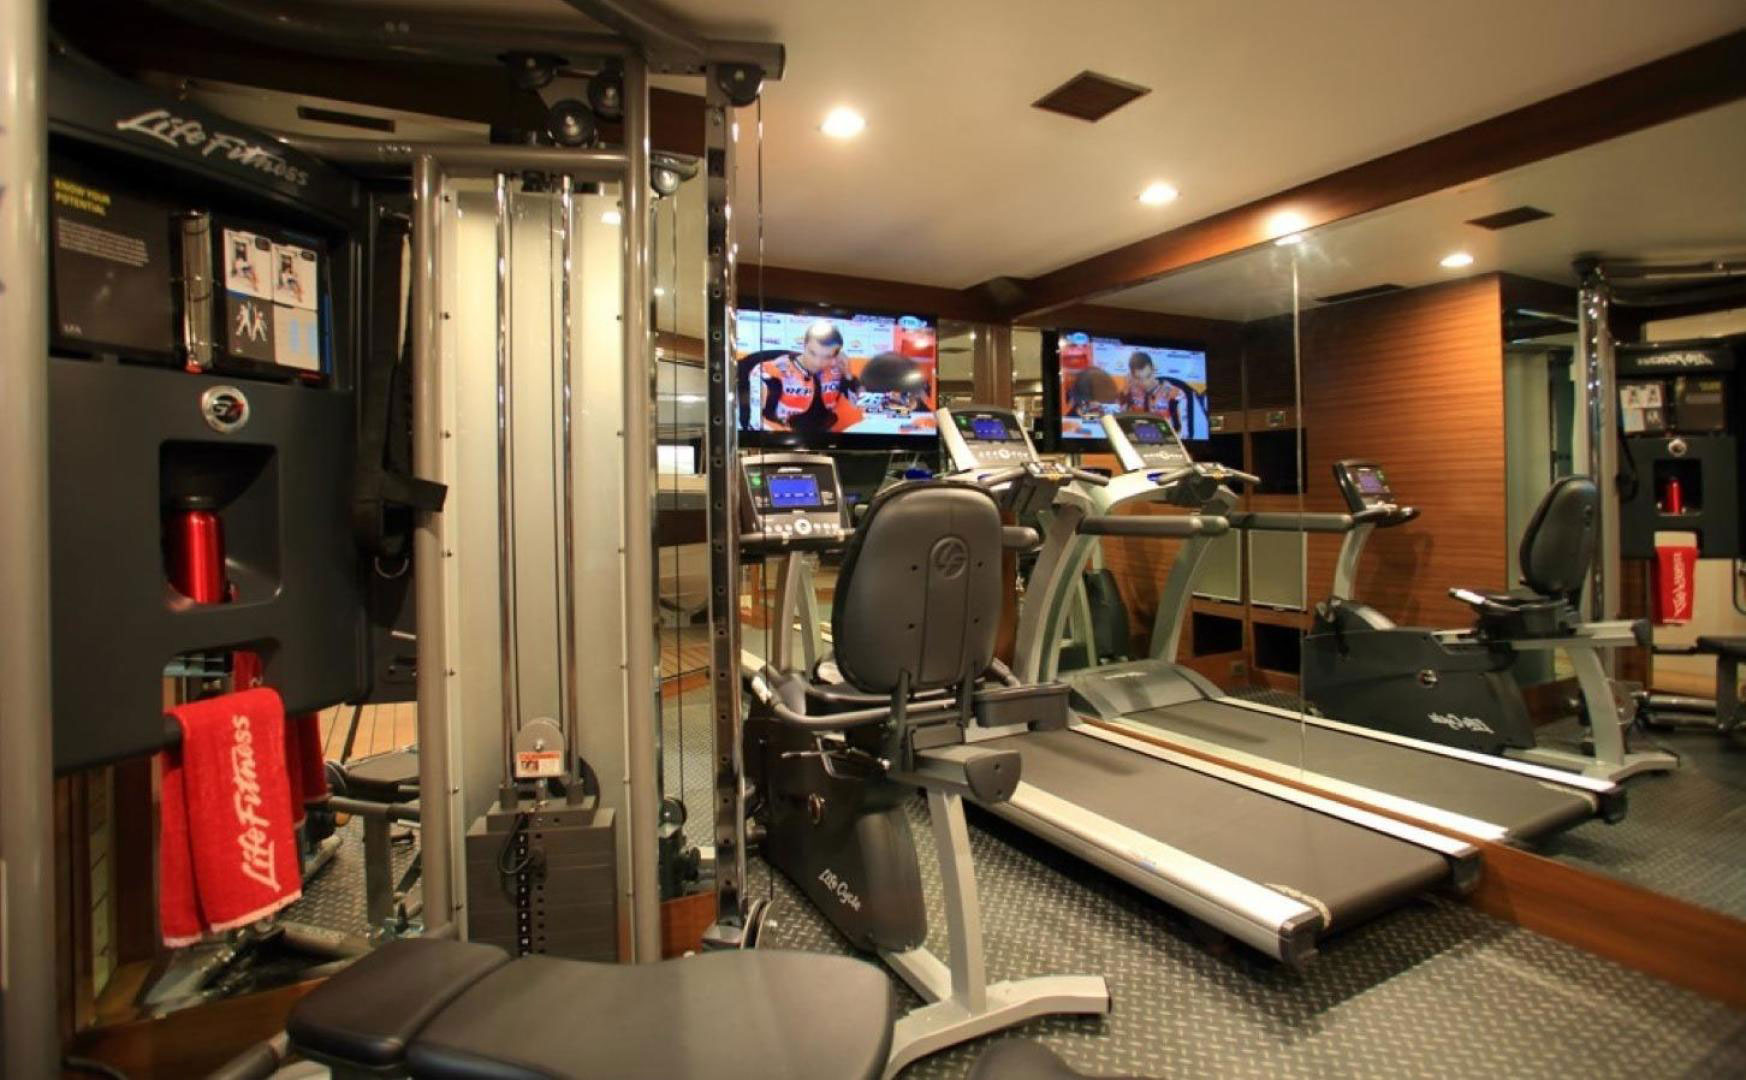 150-ft.-Luxury-Power-Yacht-–-Up-to-200-People - gym